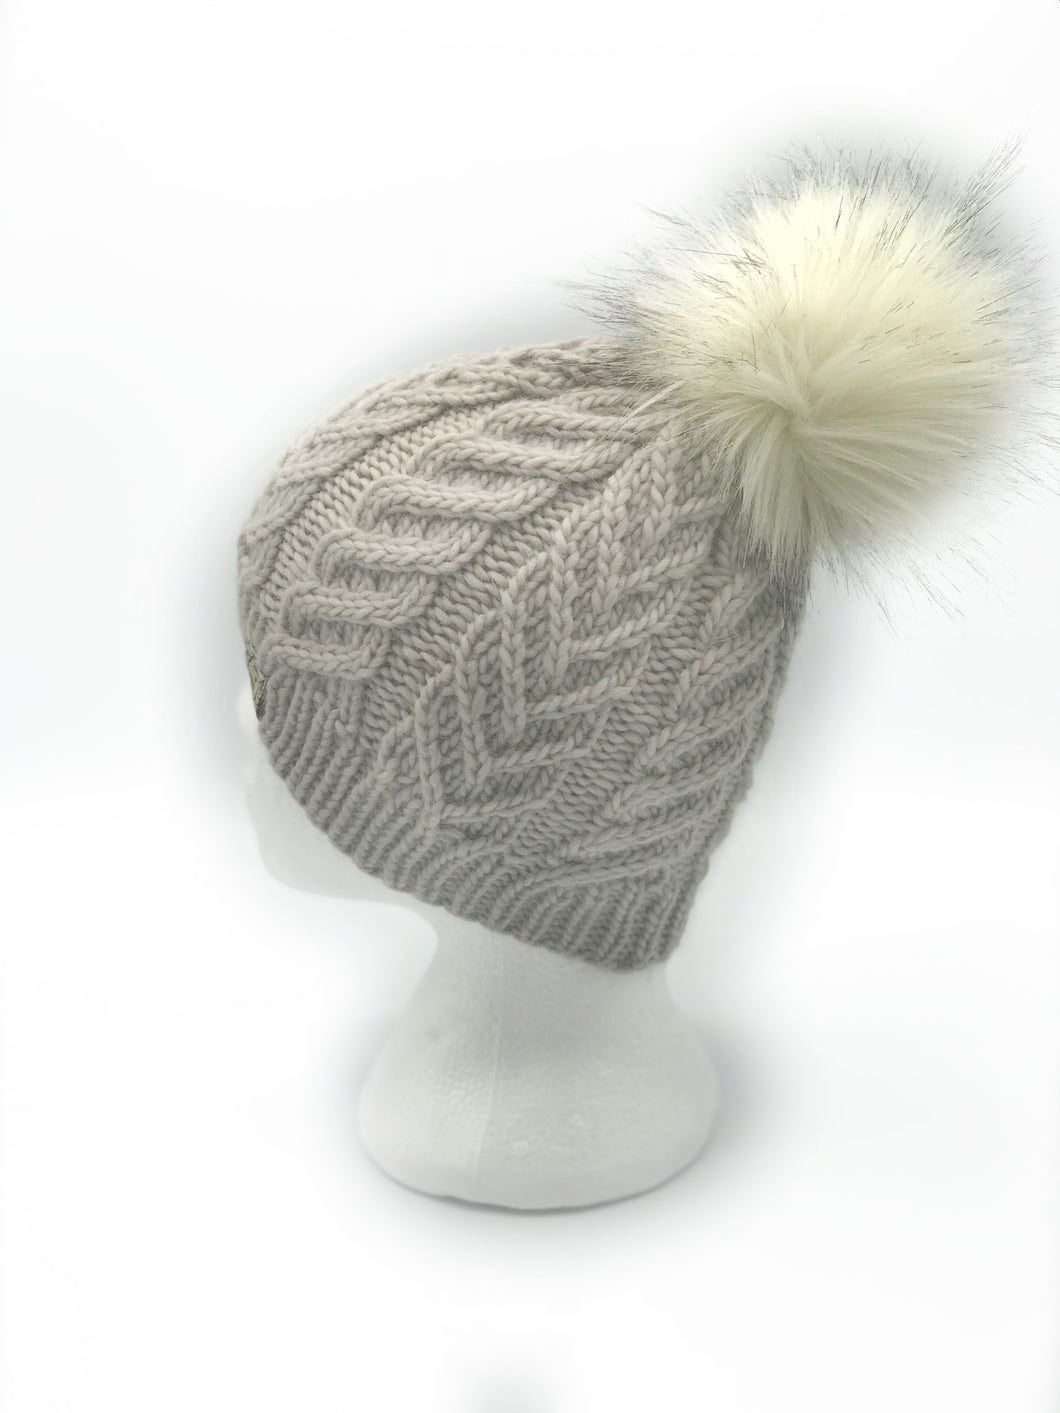 The Luxe Yuki Beanie in Pearl with Rocky Road Pom